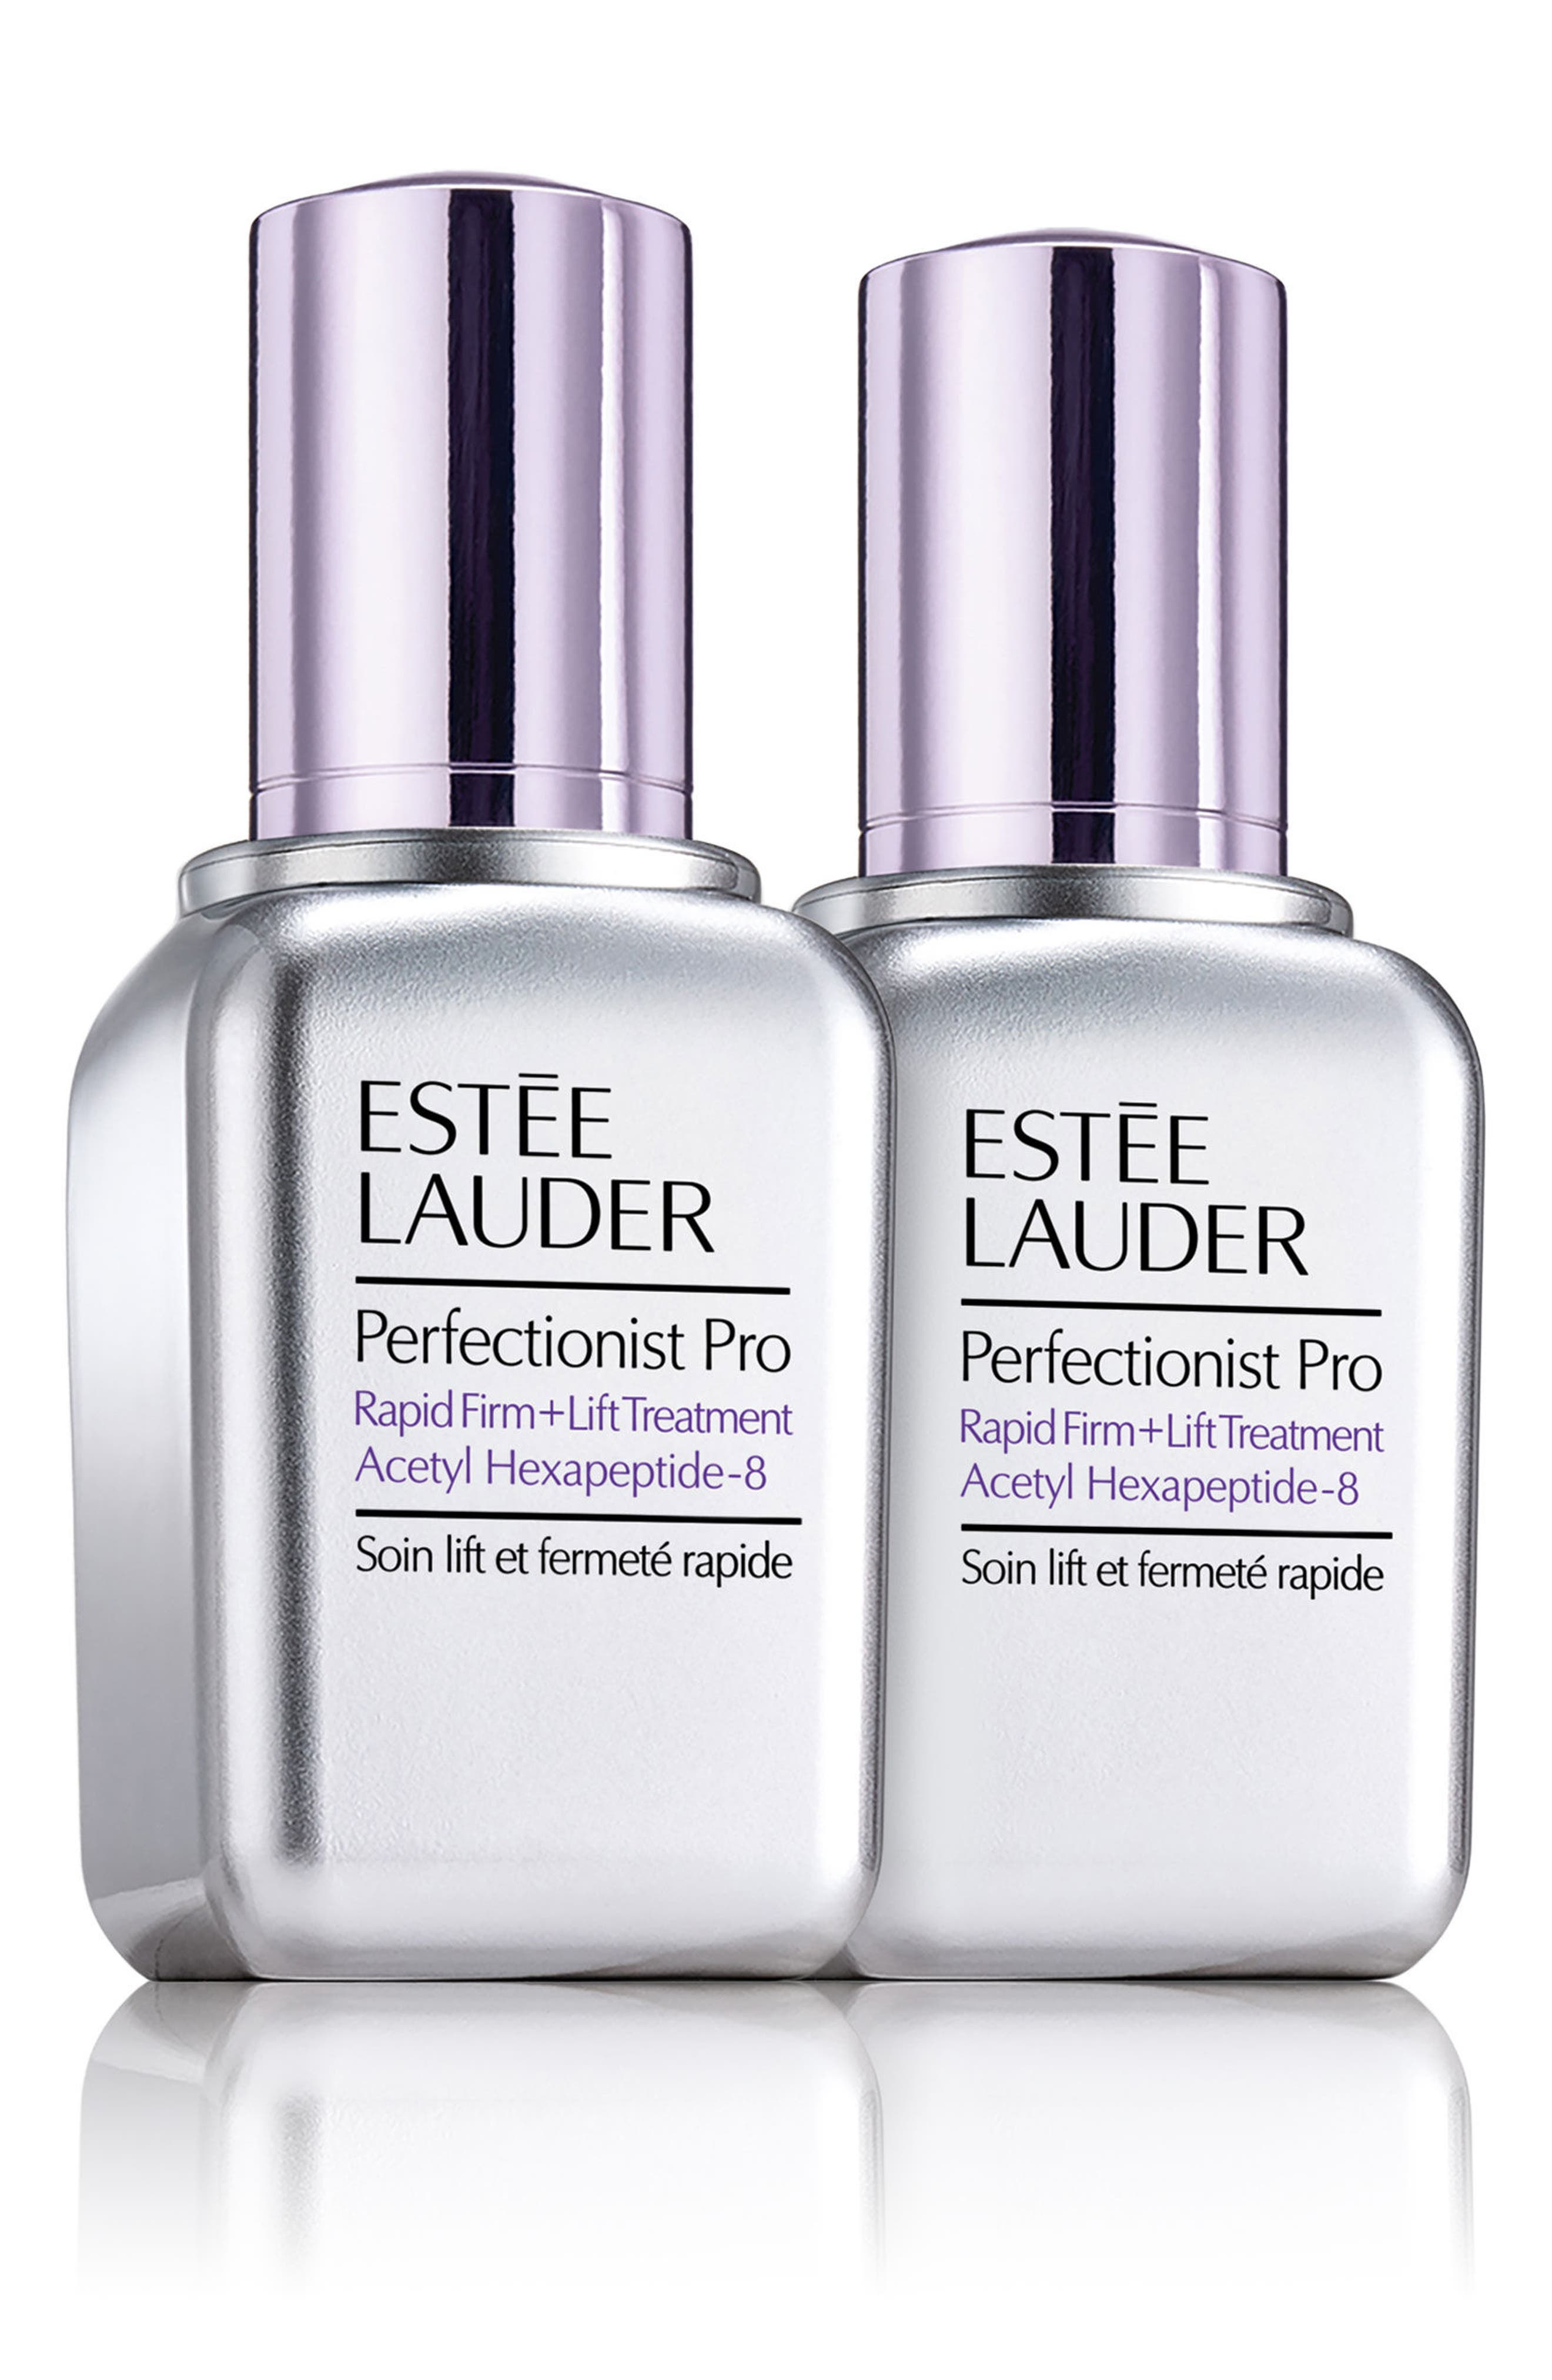 Perfectionist Pro Rapid Firm + Lift Treatment Duo